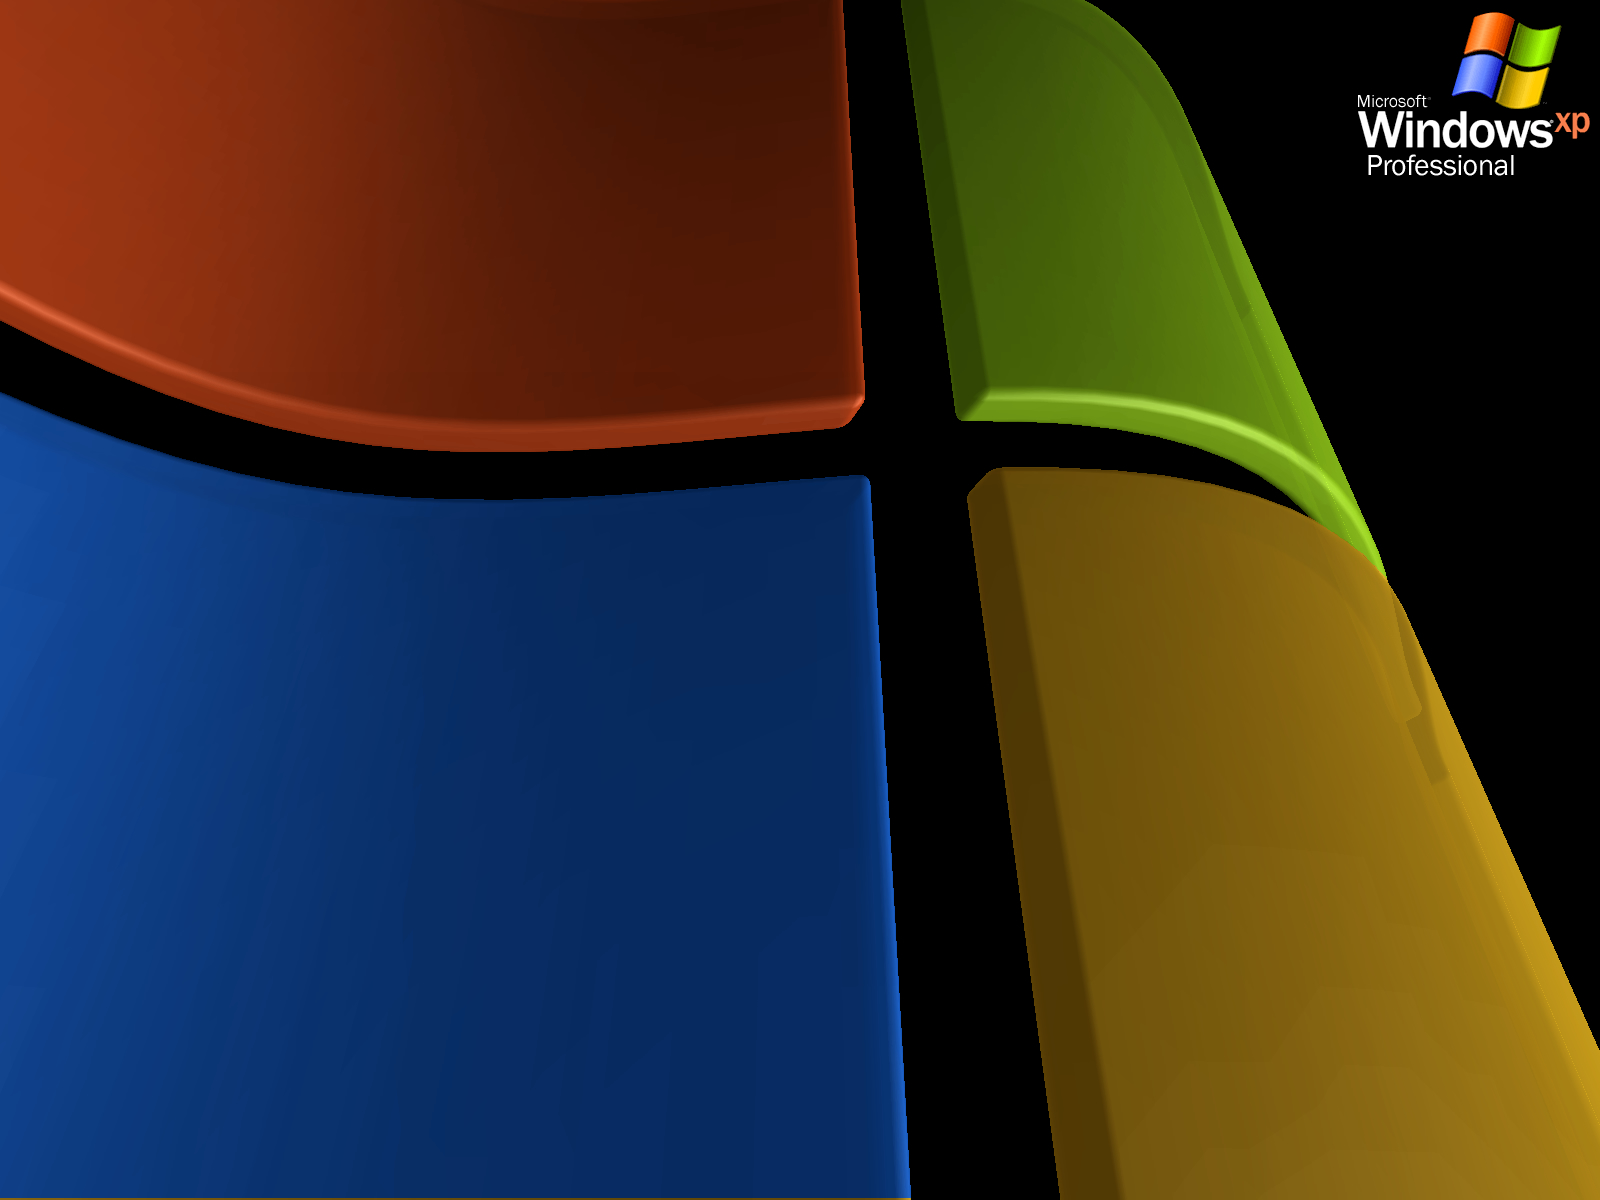 Download Displaying Images For Windows Xp Professional Wallpaper